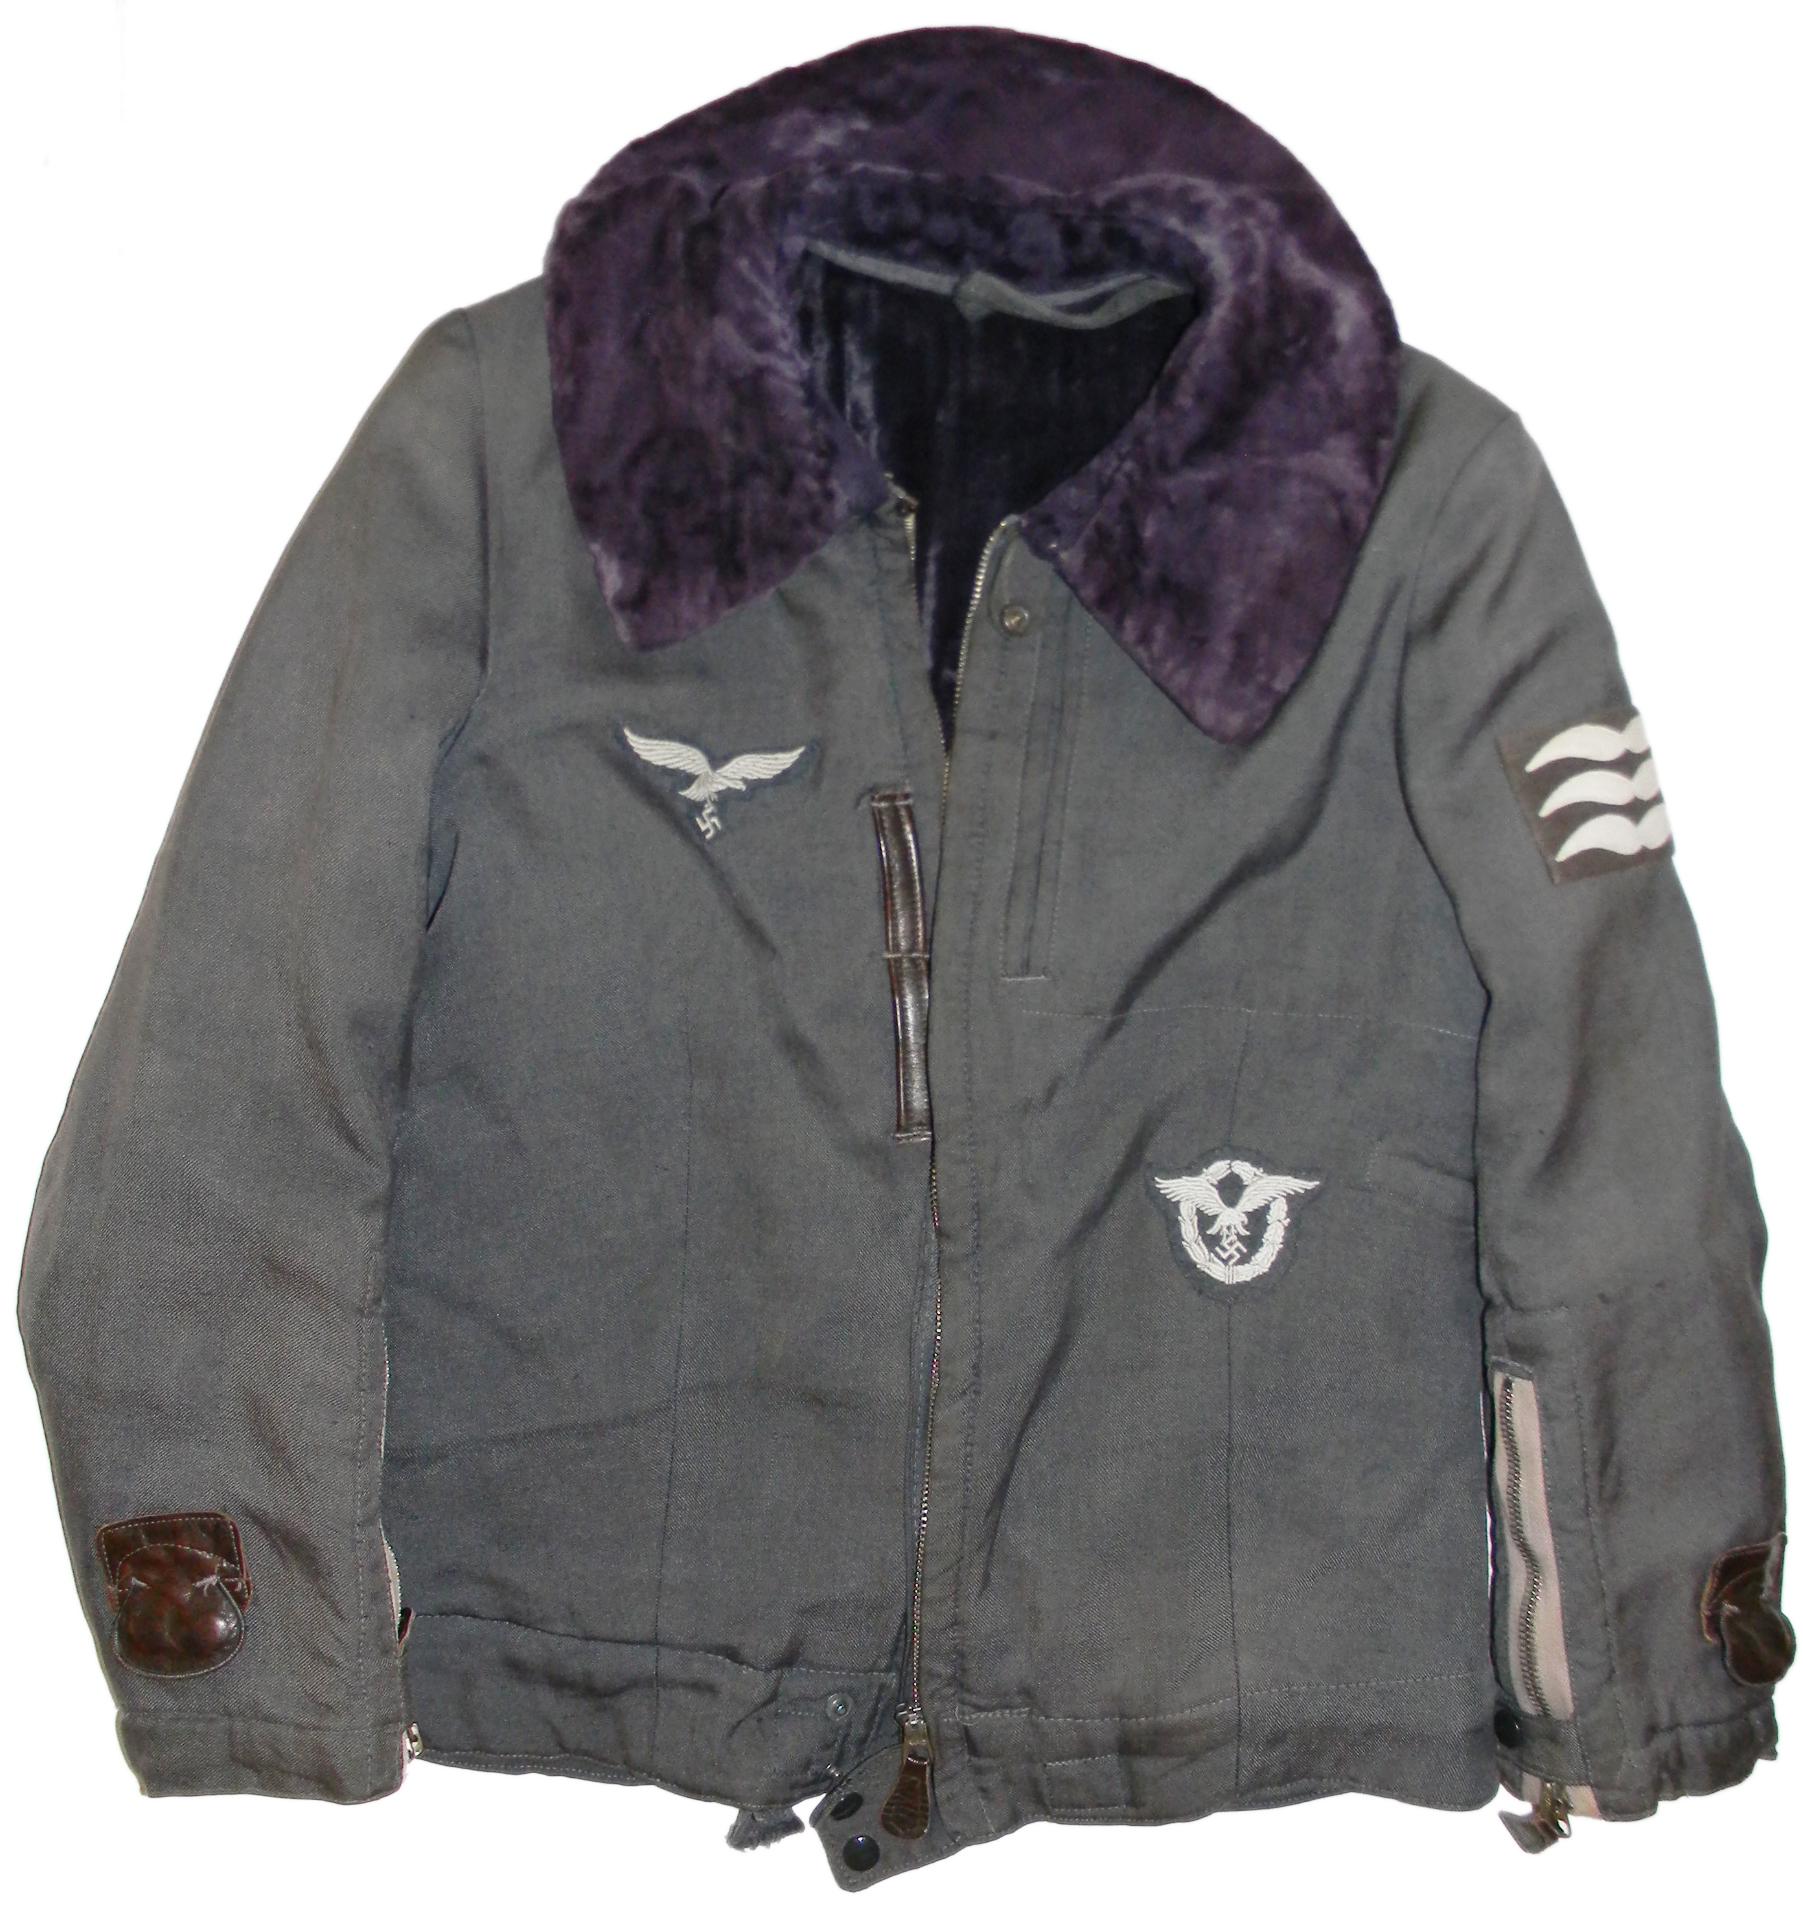 LW Electric-wired Channel jacket